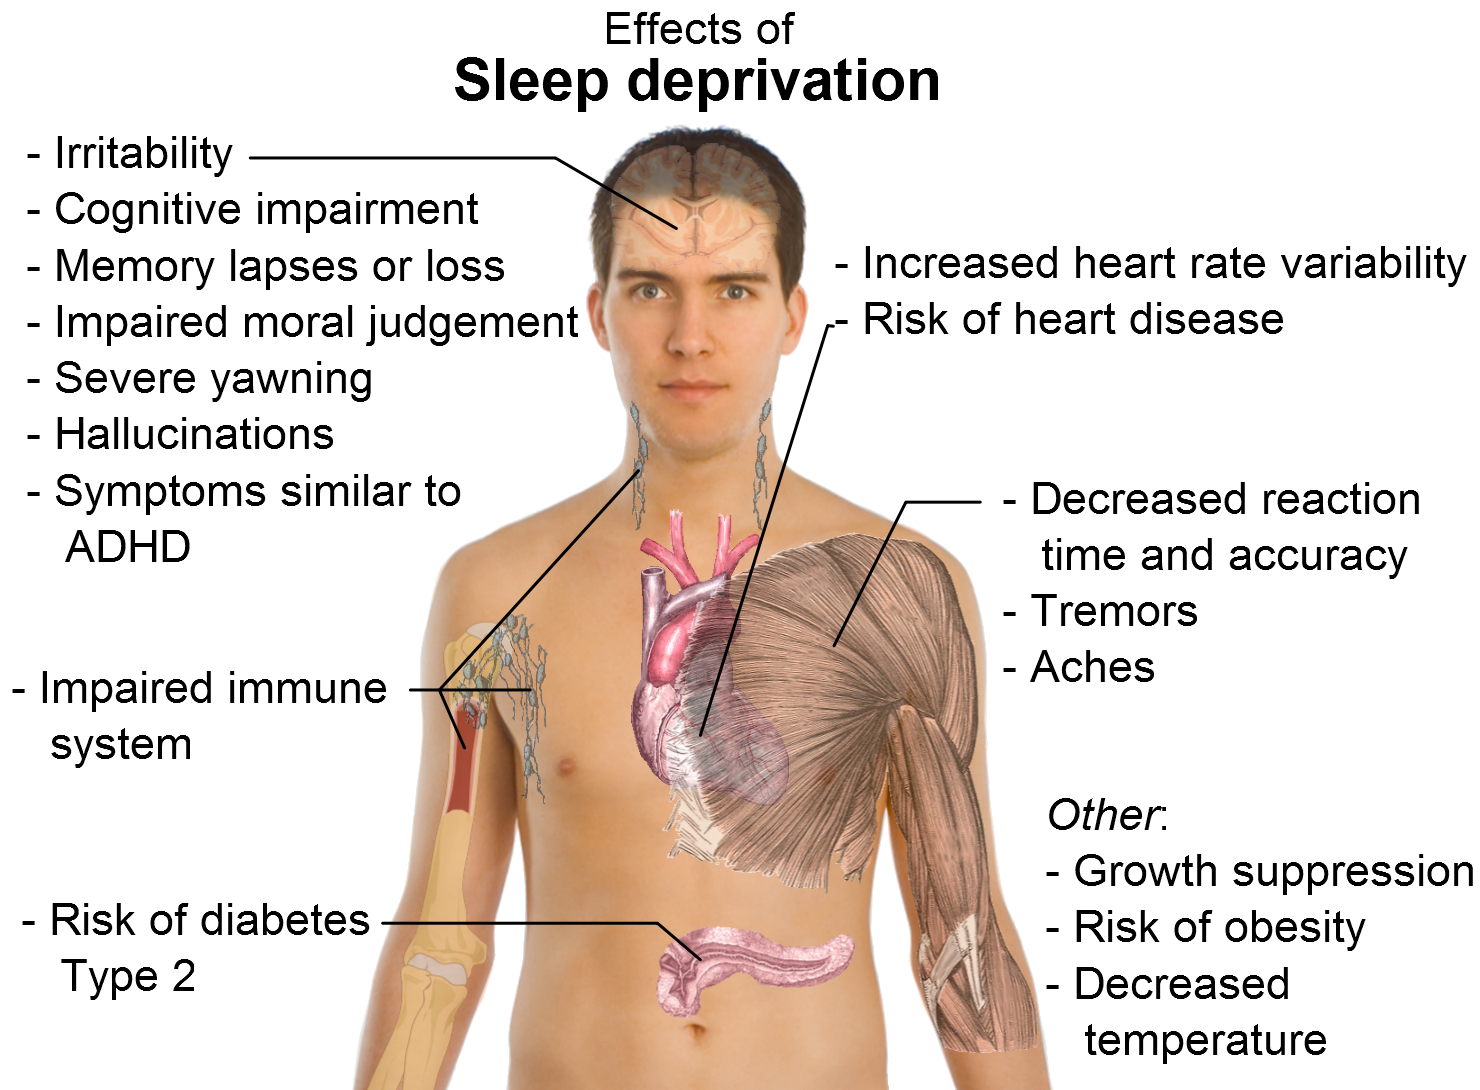 New Research Uncovers The Real Damage Of Sleep Deprivation.